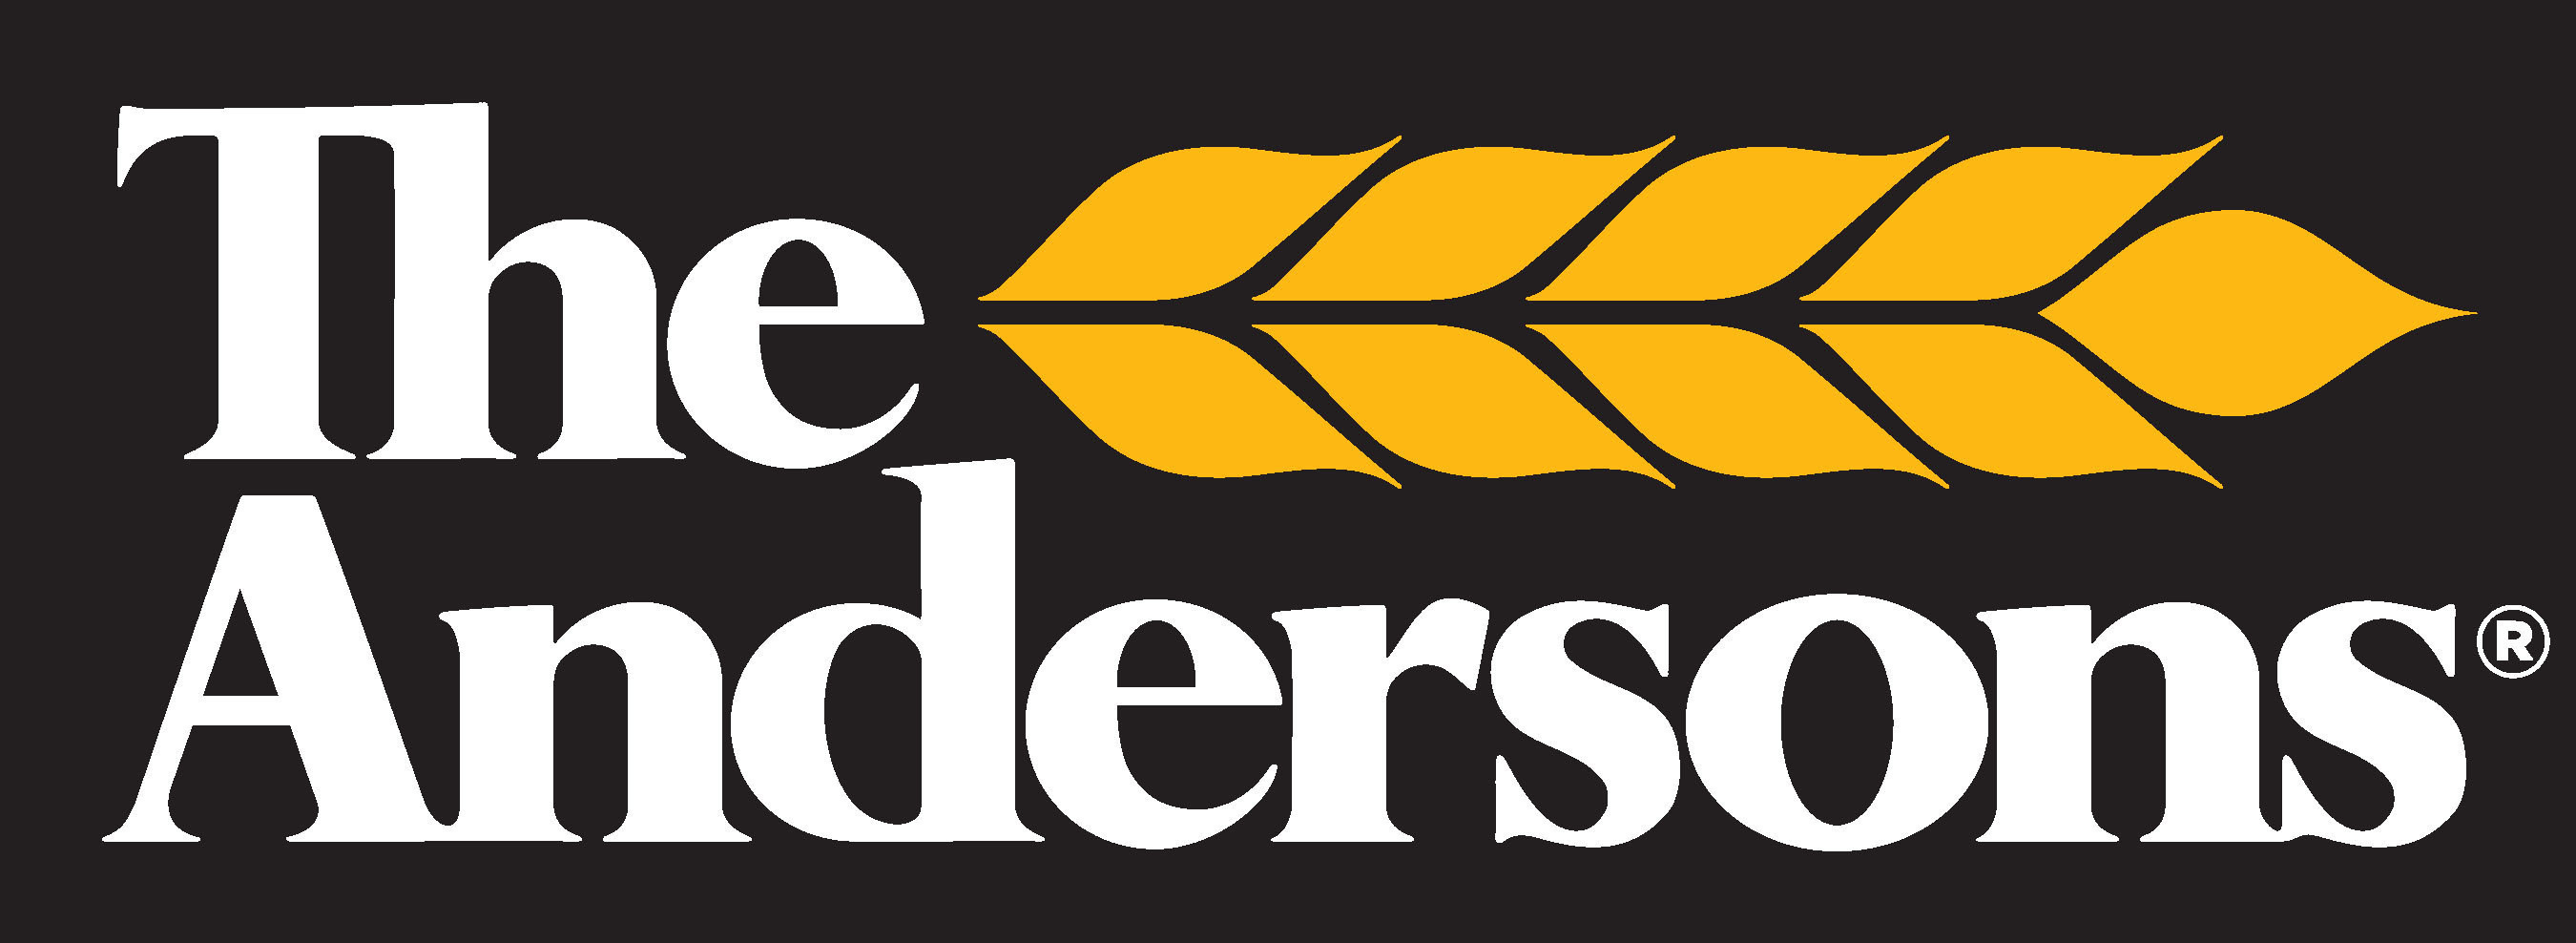 The Andersons, Inc. logo.